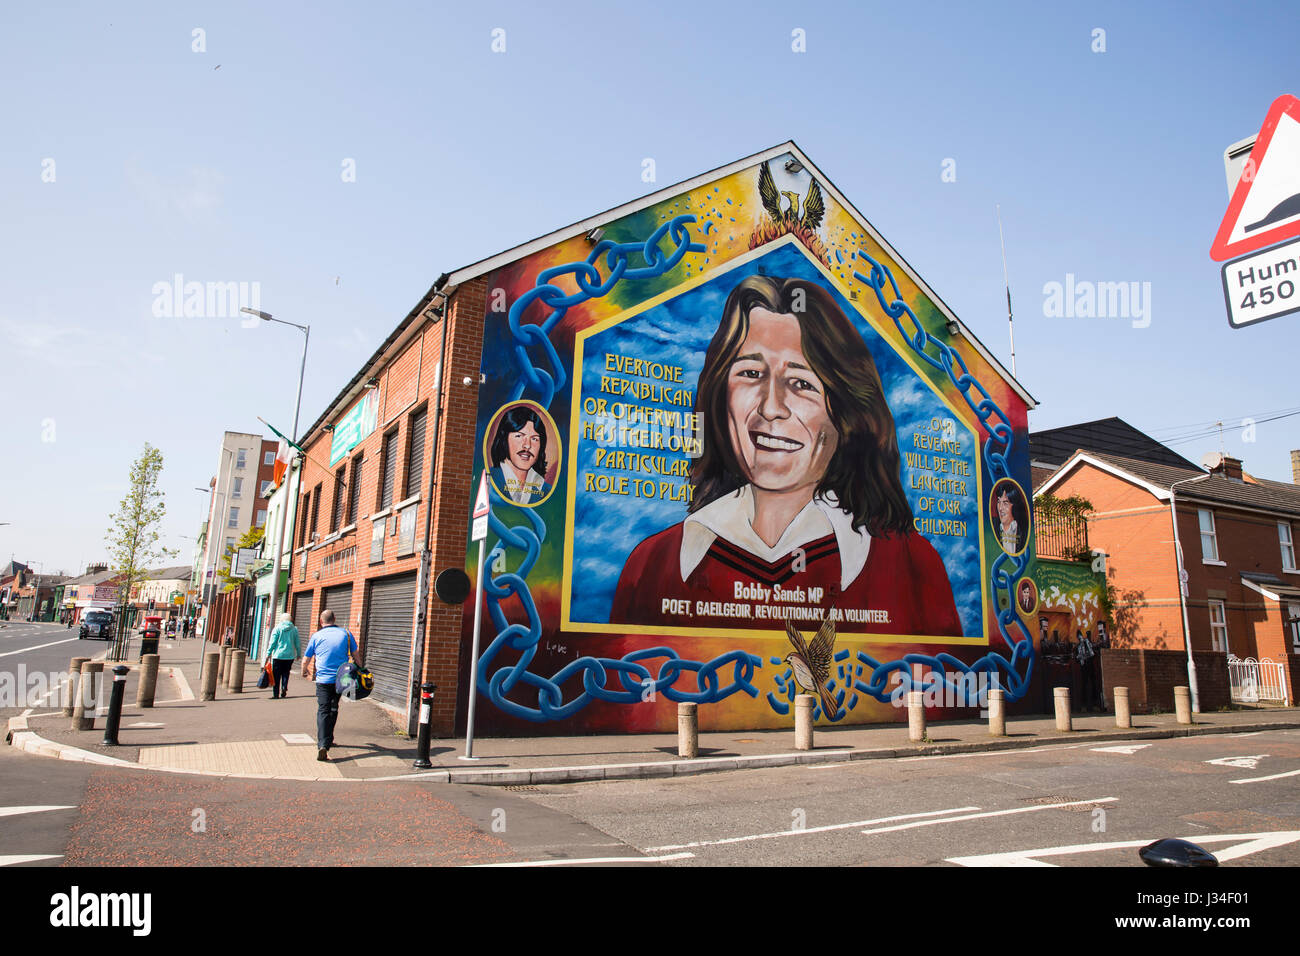 Ira mural stock photos ira mural stock images alamy for Bobby sands mural